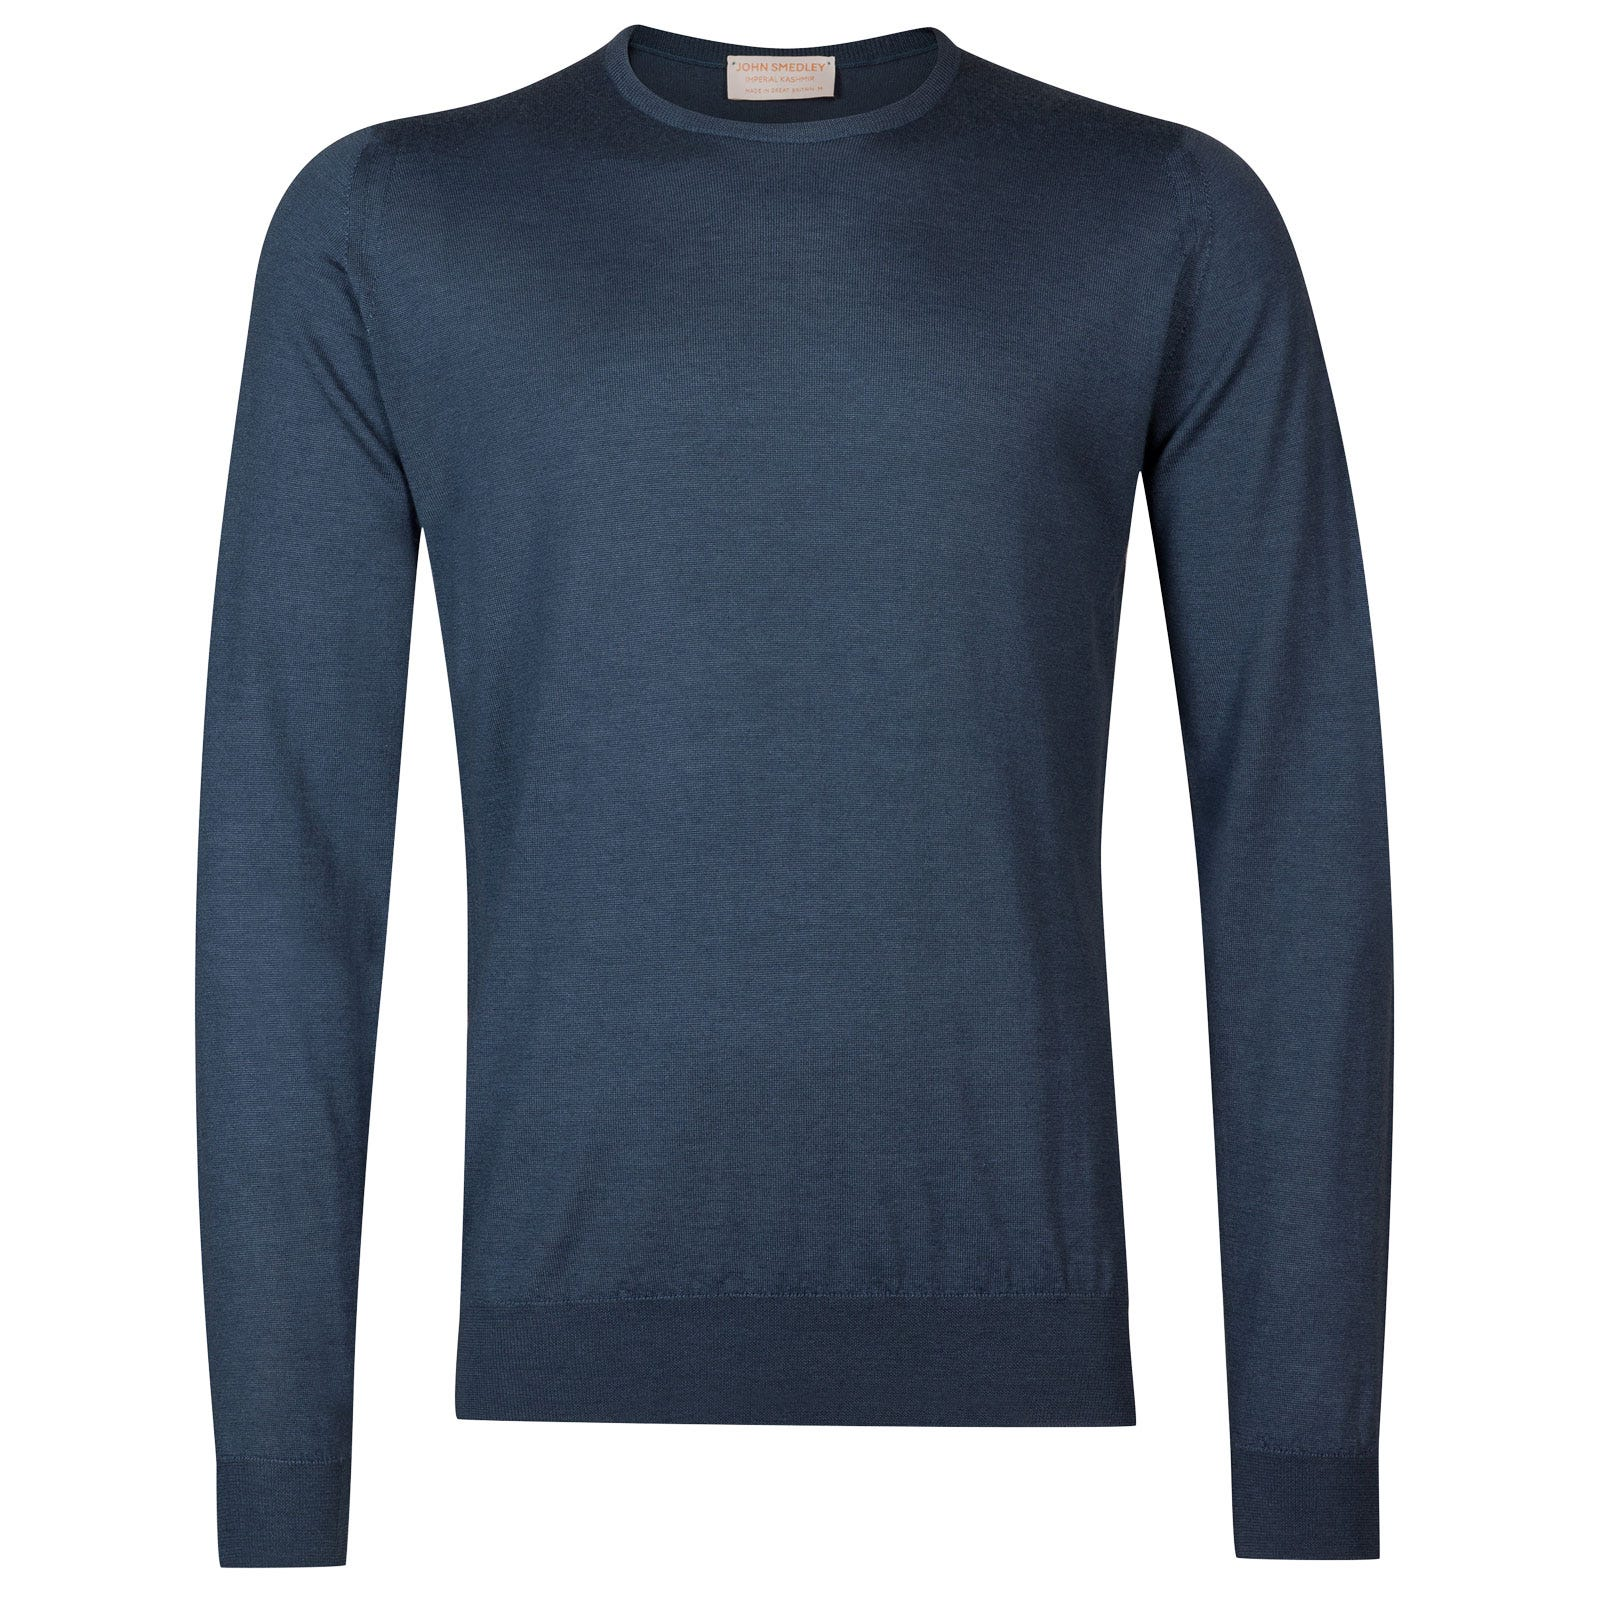 John Smedley Norland Cashmere and Silk Pullover in Teal-XXL